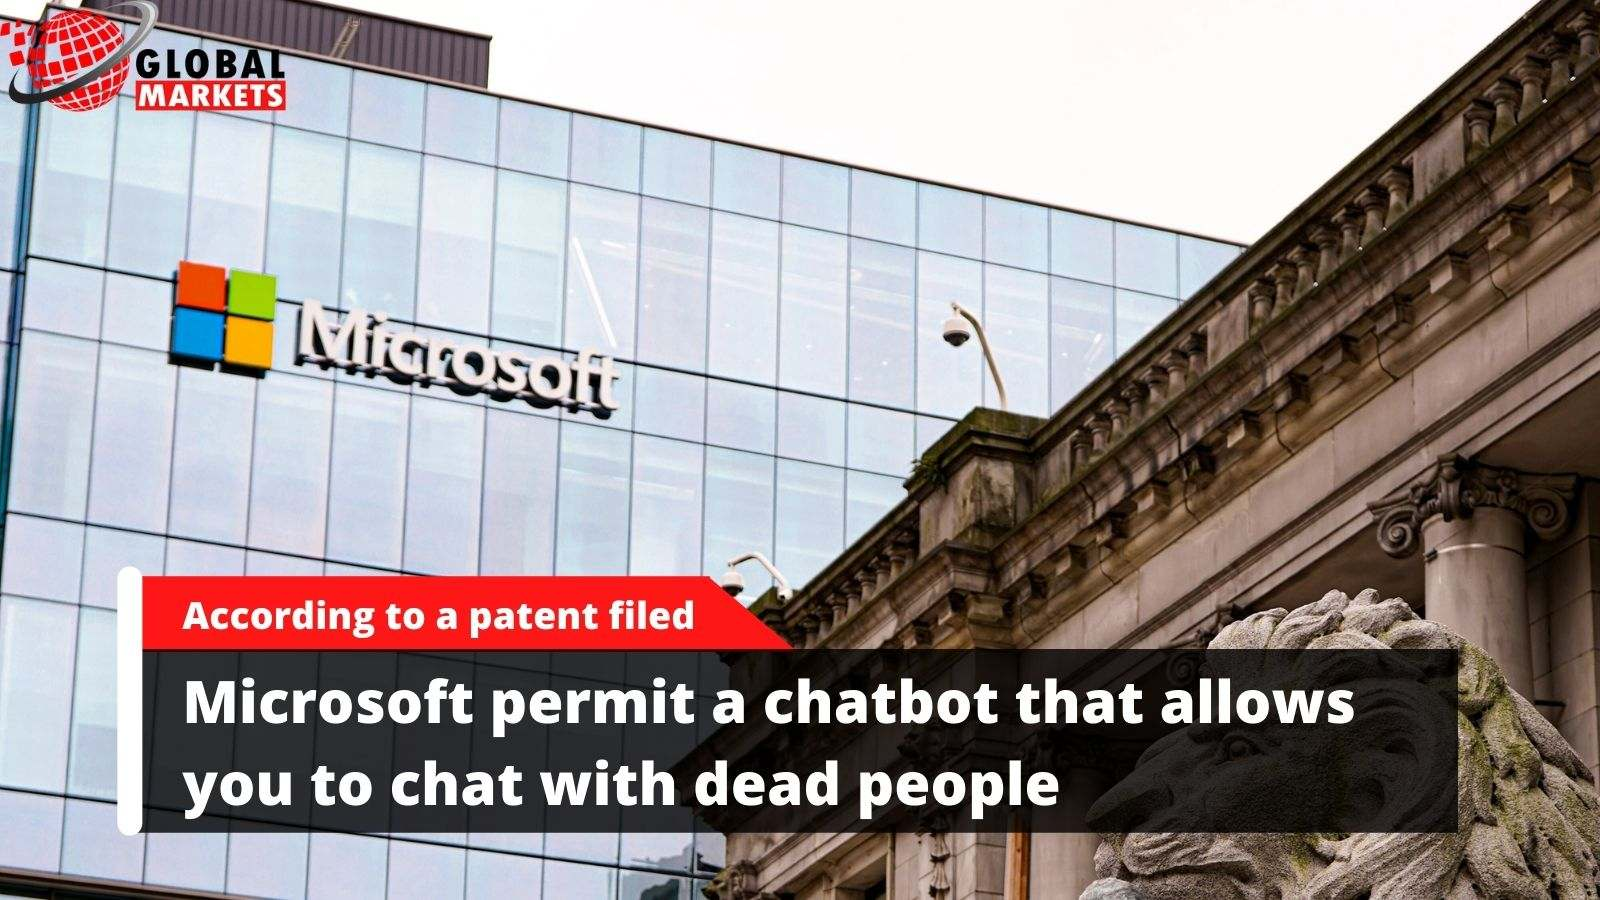 Microsoft permit a chatbot that allows you to chat with dead people